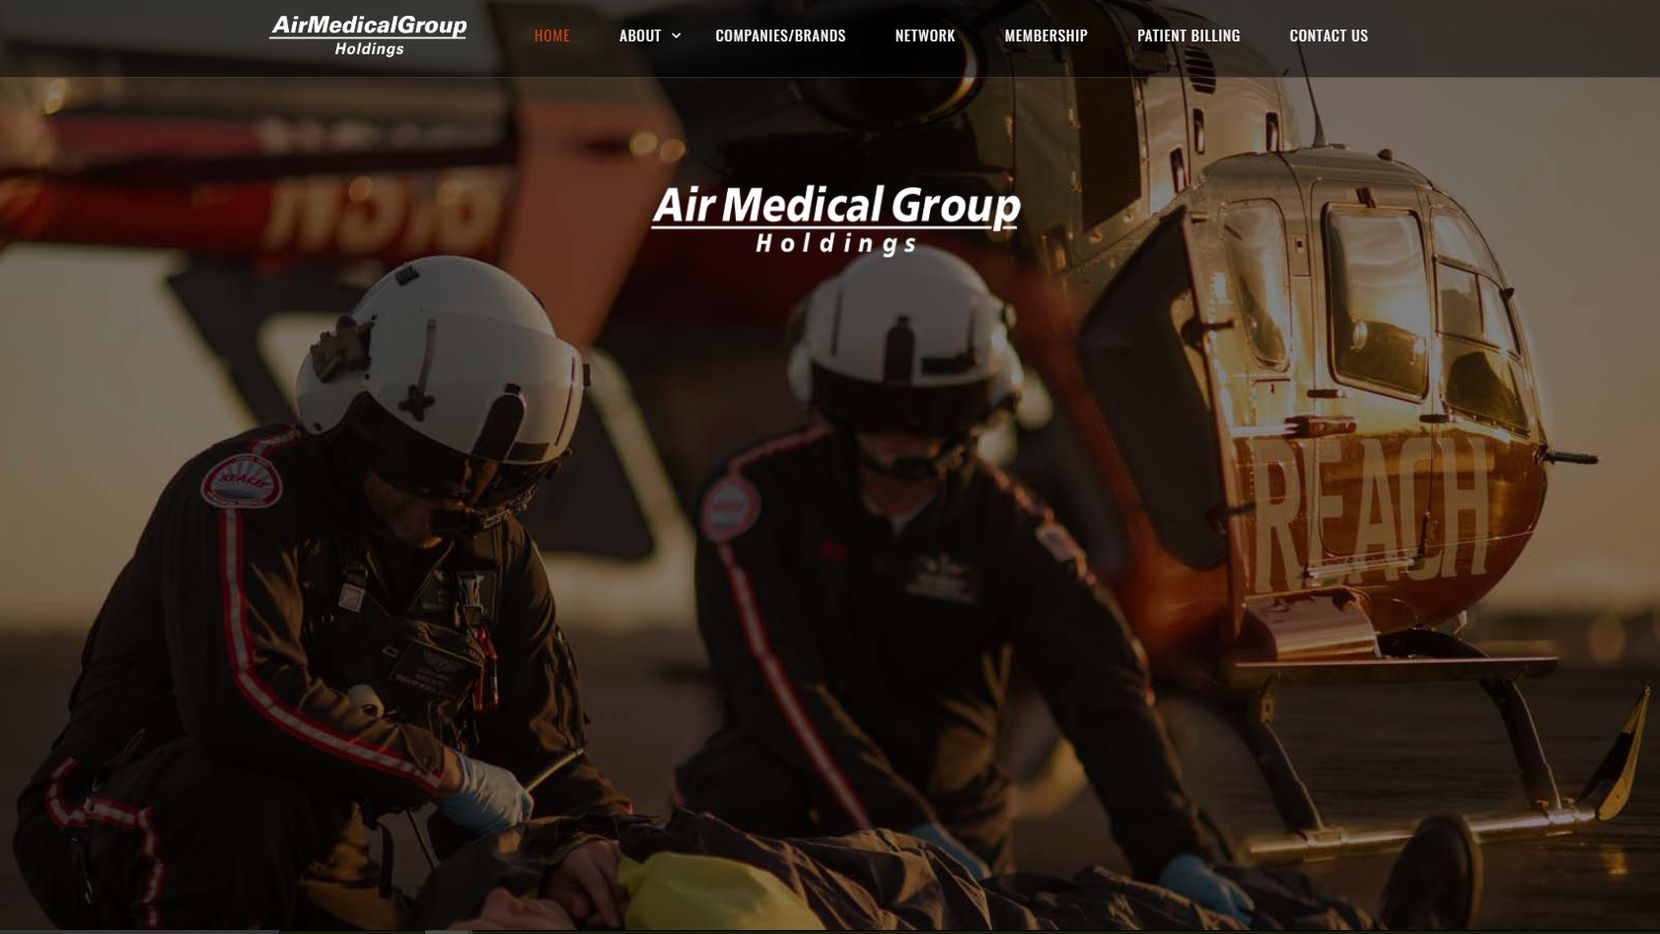 Screen grab of the website for American Medical Group Holdings, a Lewsiville-based air ambulance operator owned by a New York private equity firm.